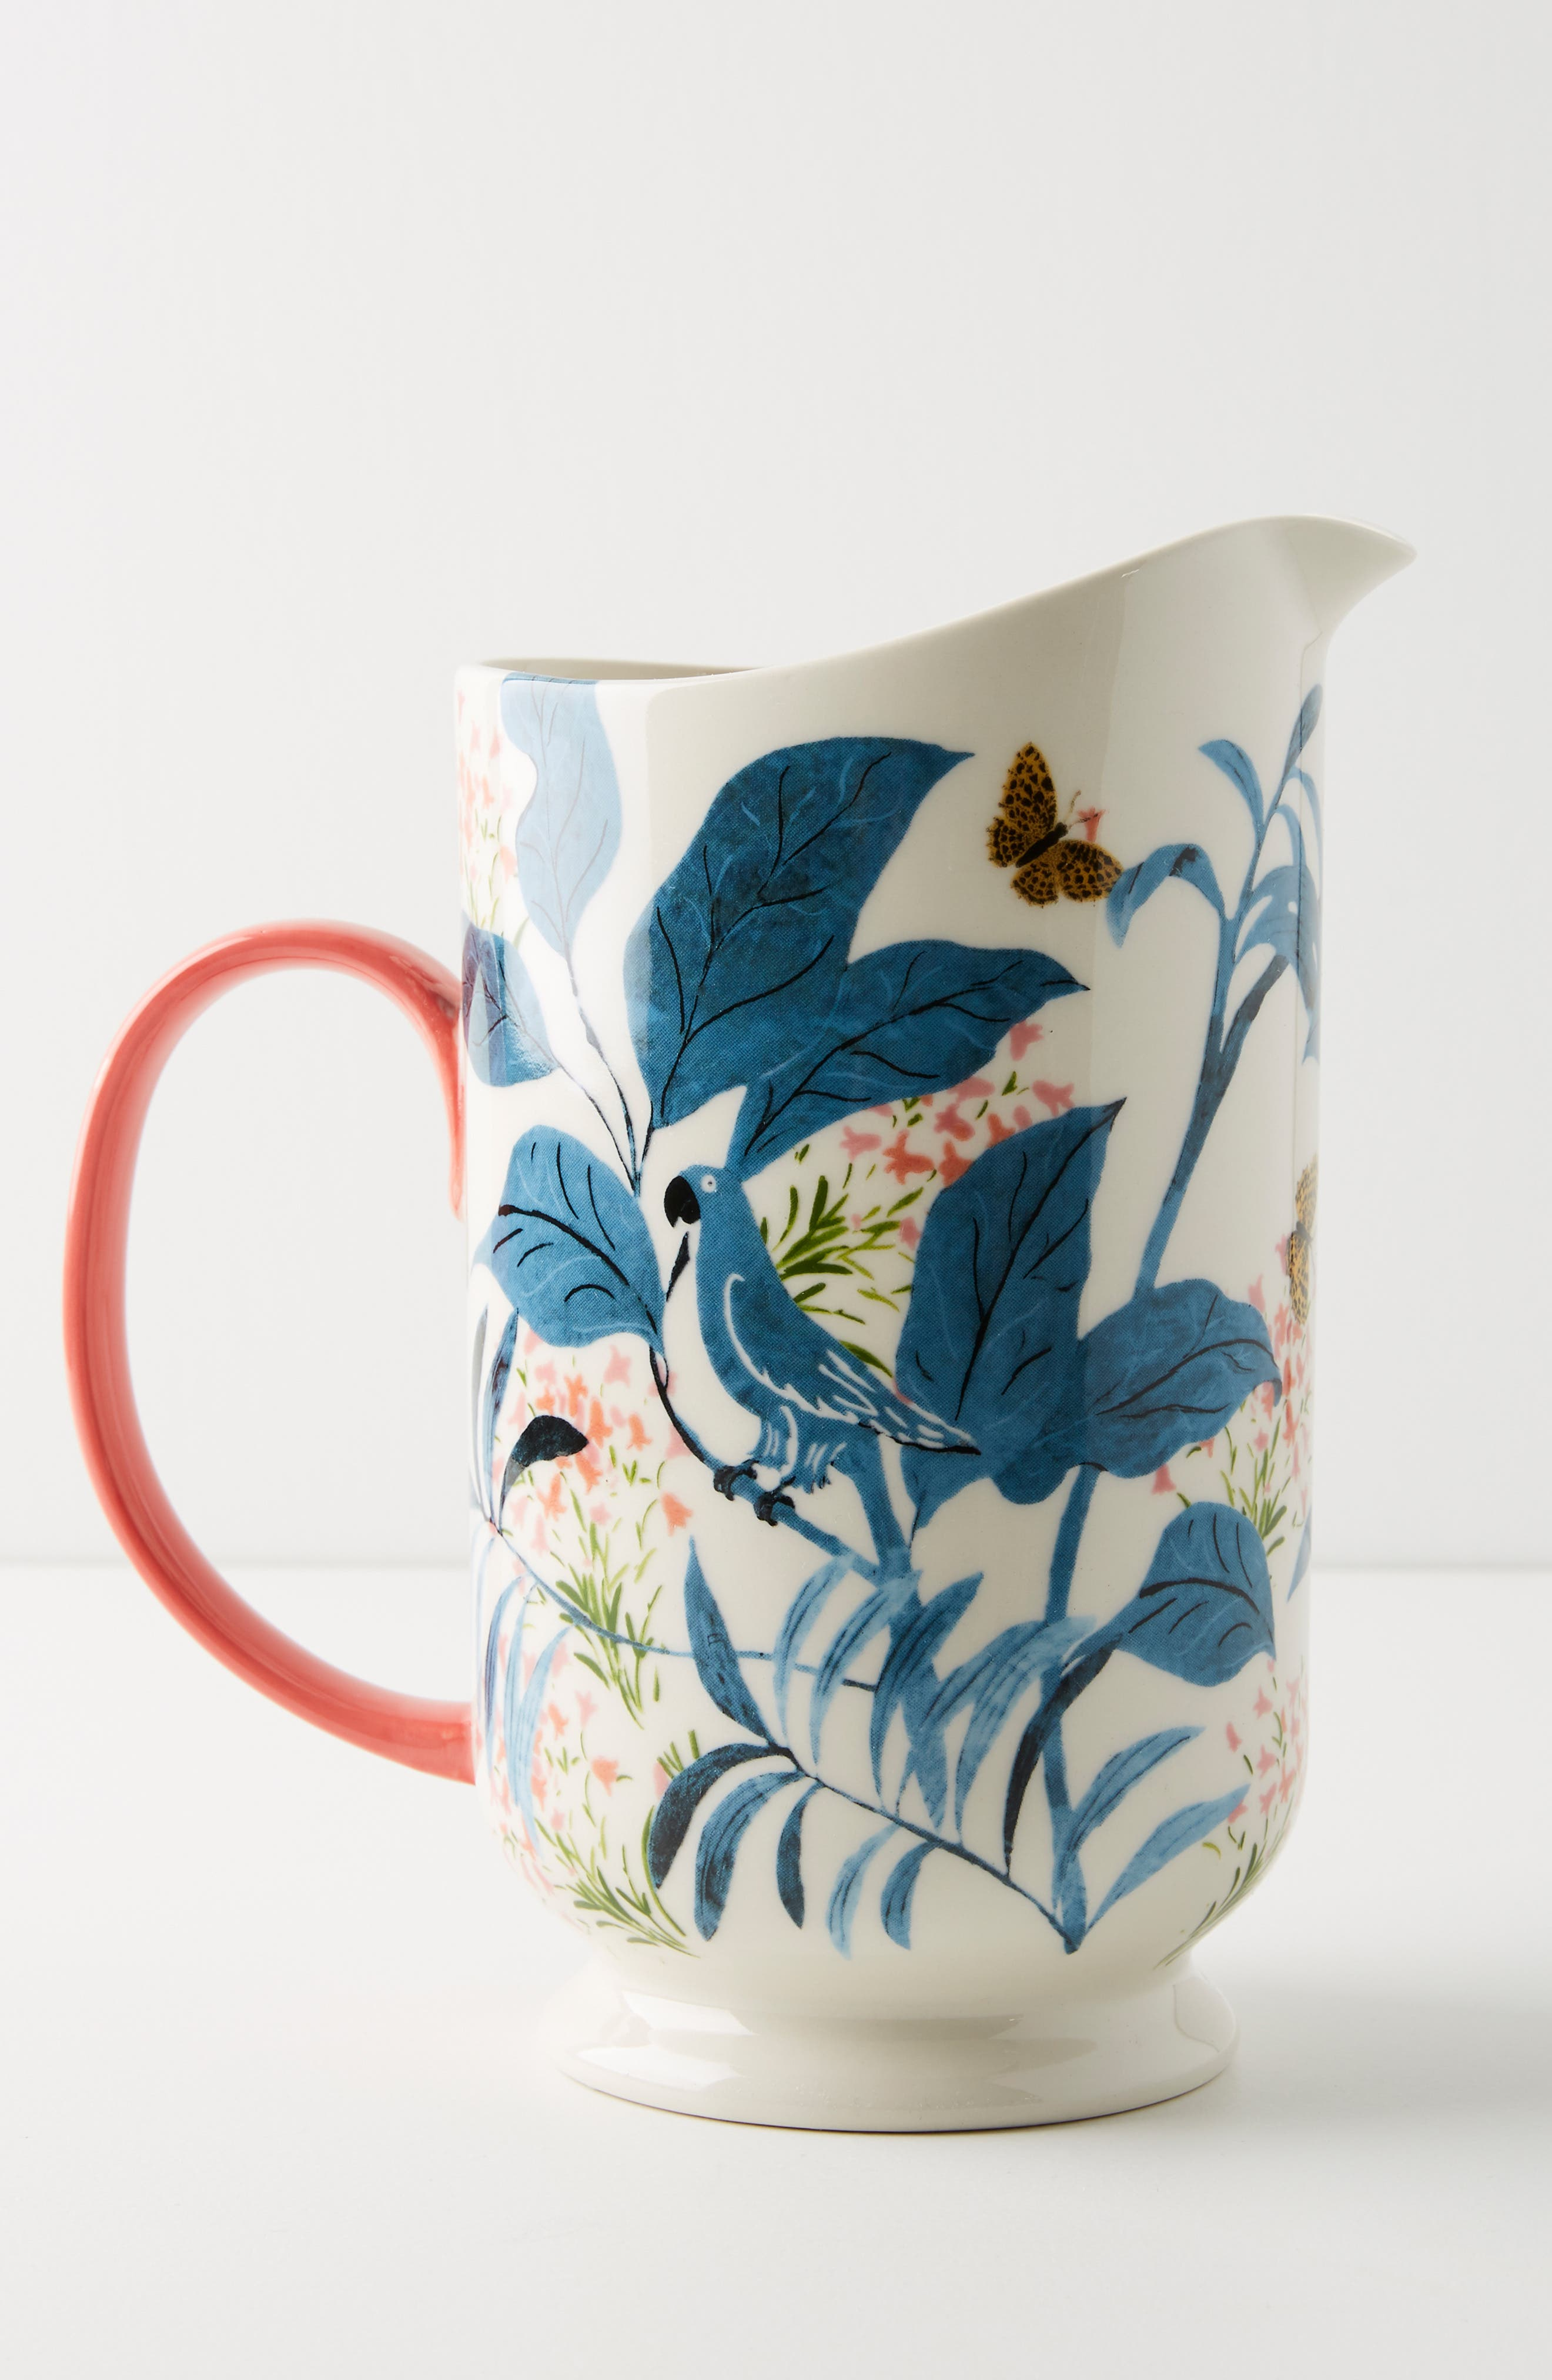 ANTHROPOLOGIE,                             Paule Marrot Butterfly Pitcher,                             Alternate thumbnail 2, color,                             BLUE